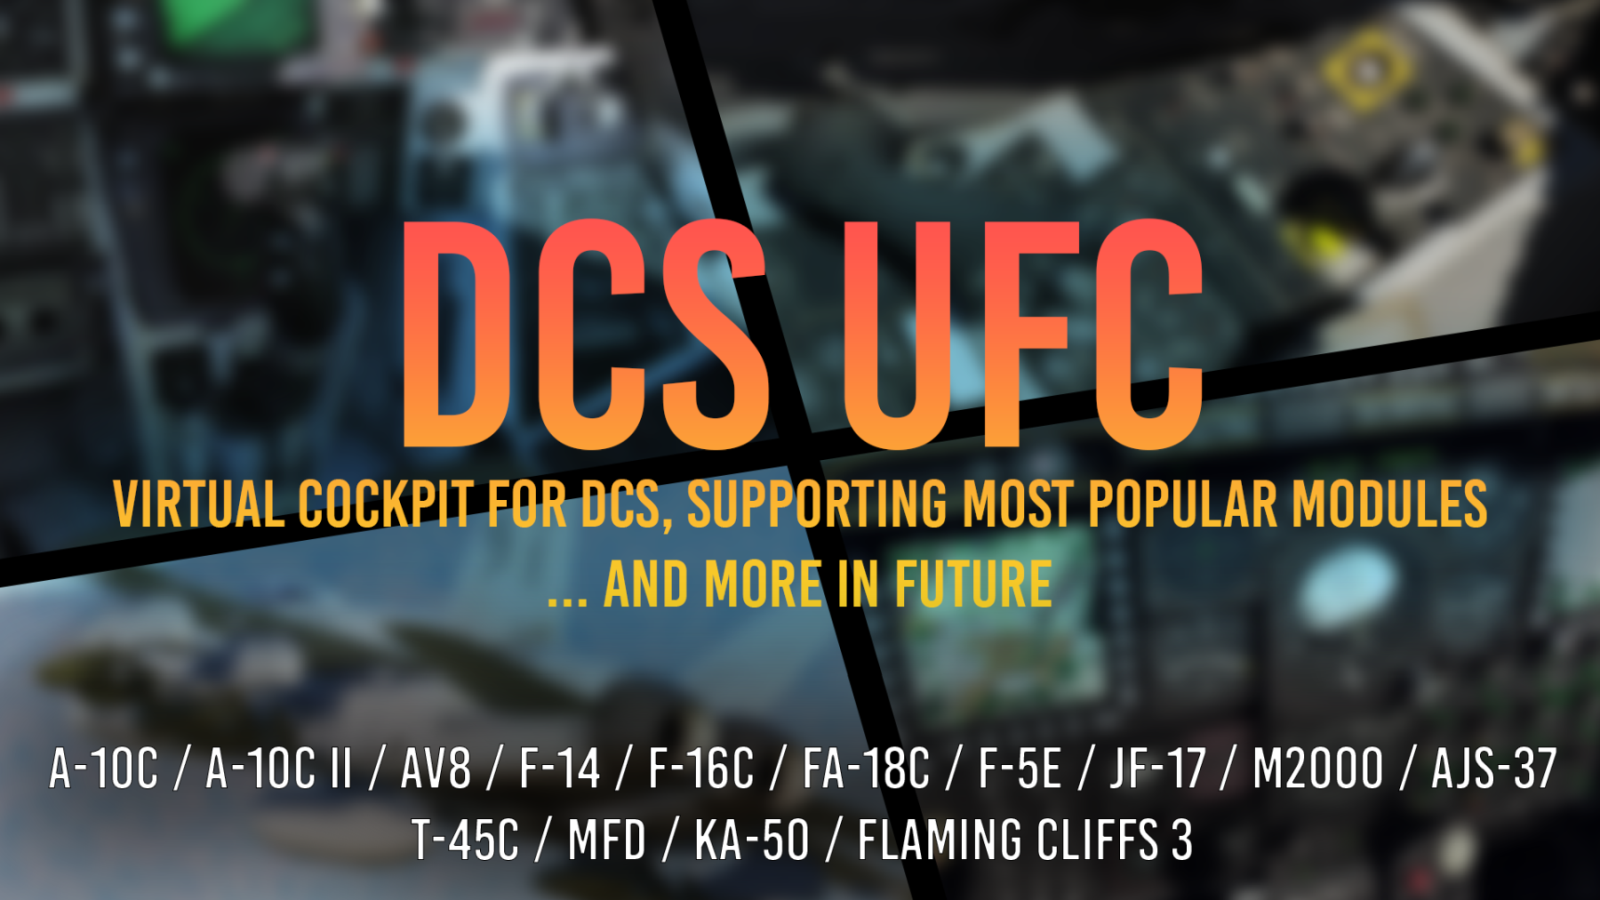 DCS UFC (Android app) 1.0.2021.0508